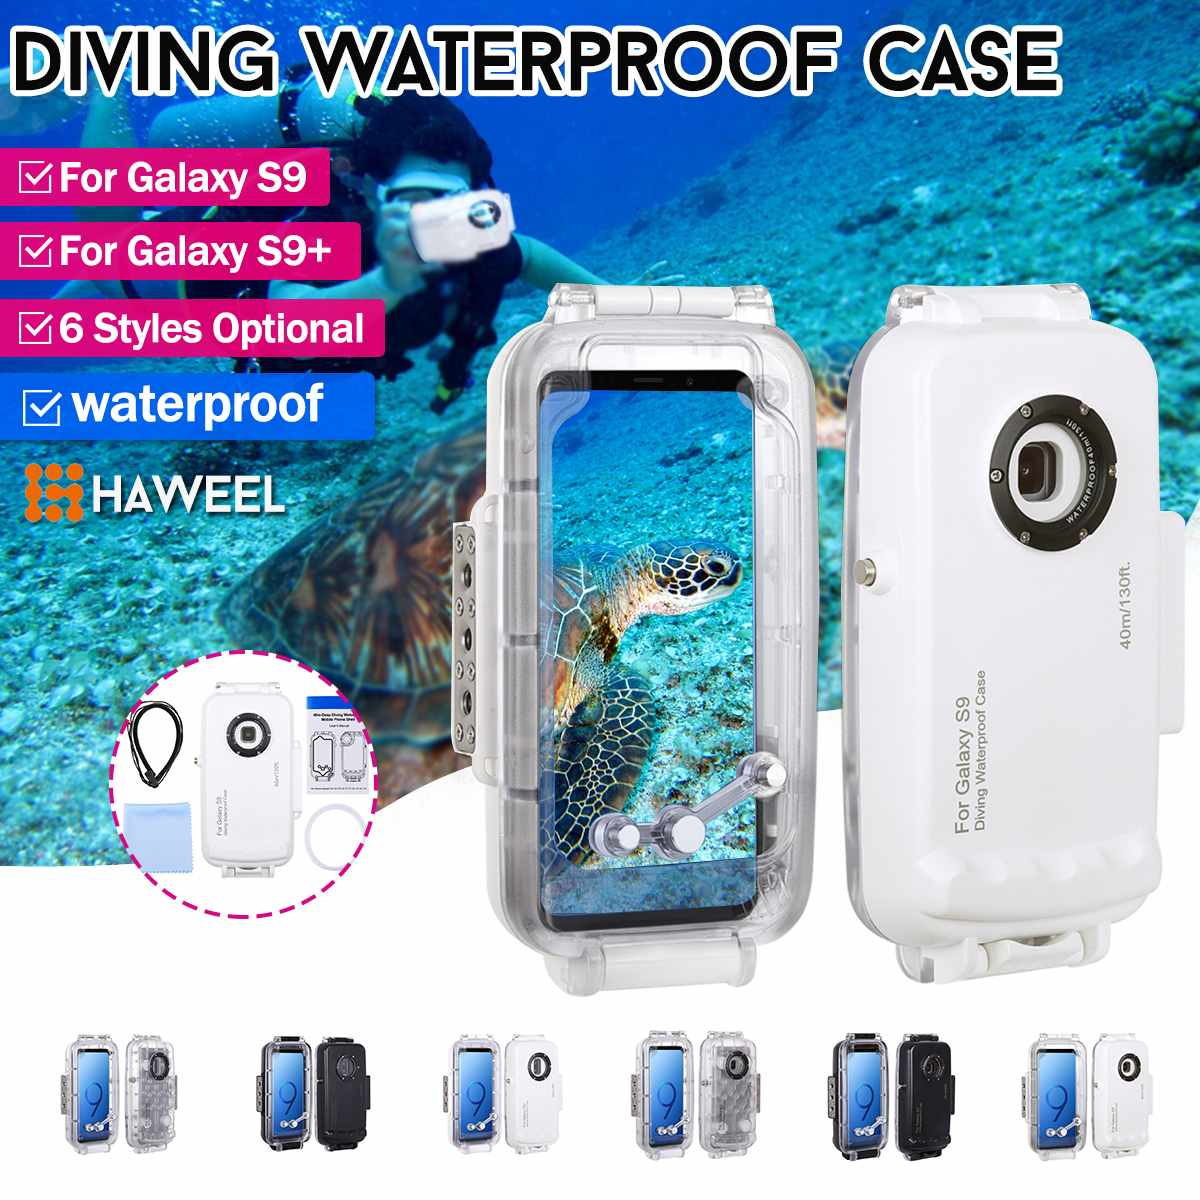 6 Pcs HAWEEL 40m Underwater Diving Phone Protective Case for Galaxy S9/S9+ Surfing Swimming Snorkeling Photo Video Taking Cover6 Pcs HAWEEL 40m Underwater Diving Phone Protective Case for Galaxy S9/S9+ Surfing Swimming Snorkeling Photo Video Taking Cover